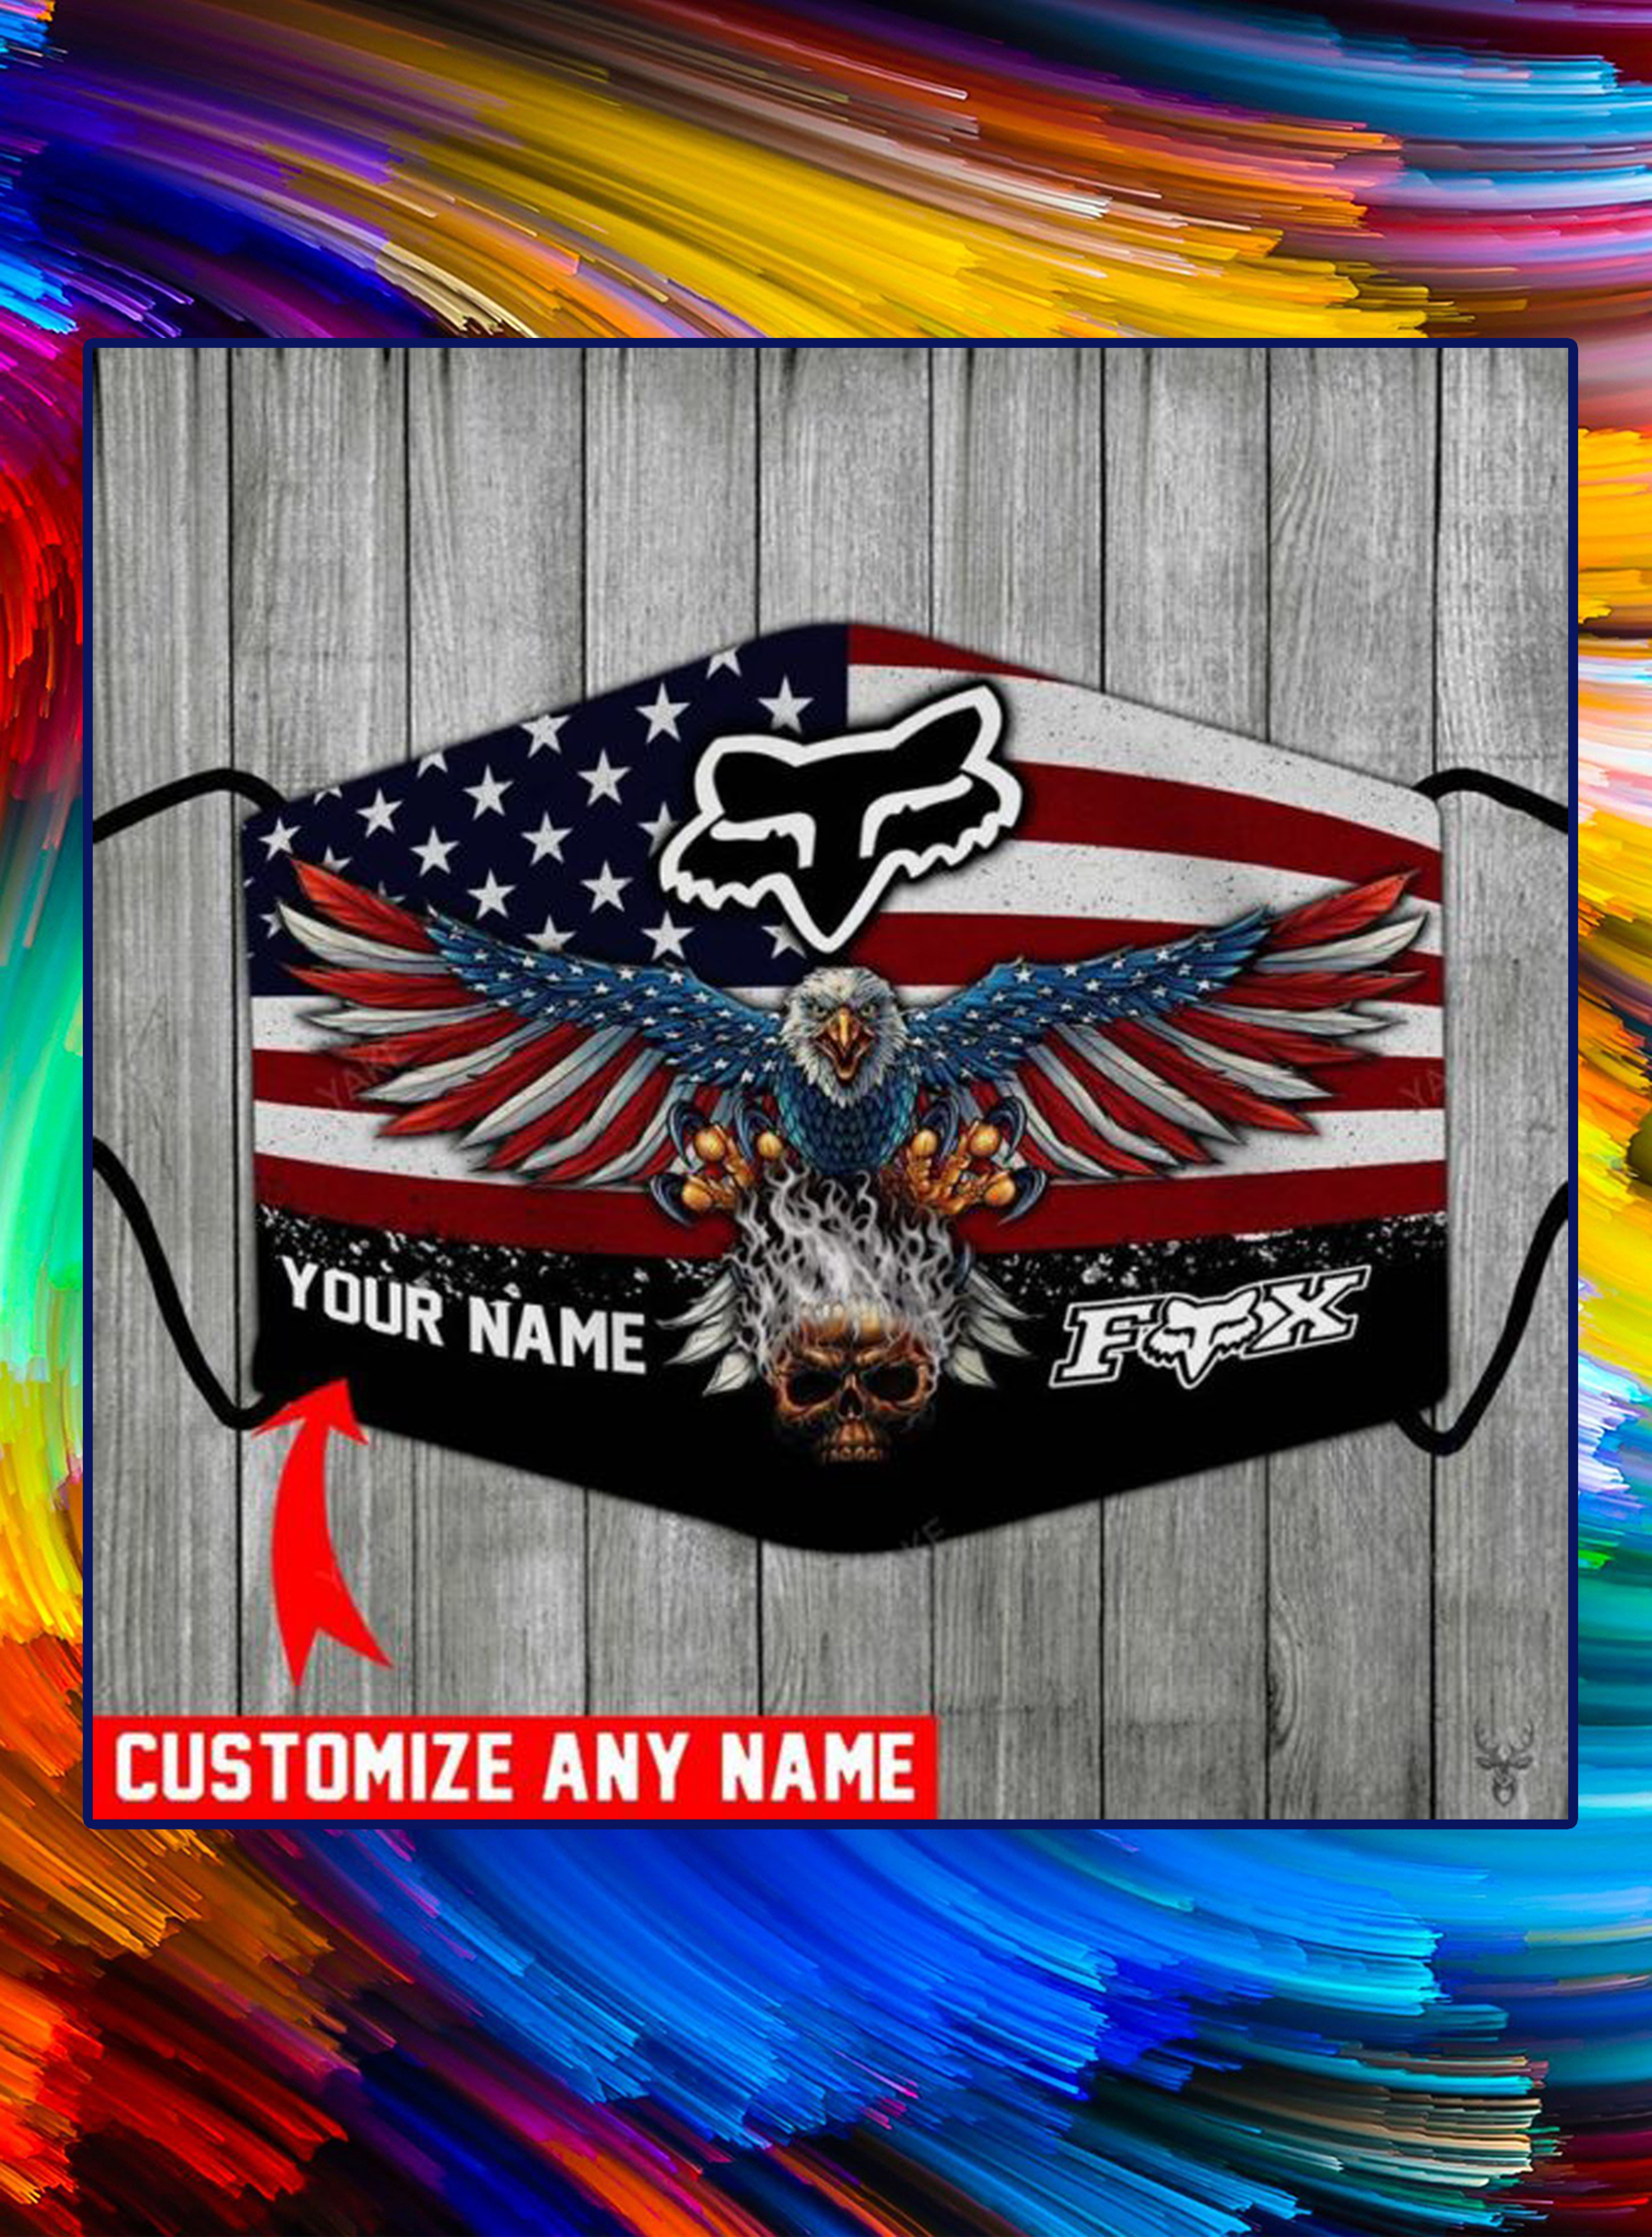 Fox racing american flag eagle customize name face mask - pic 1